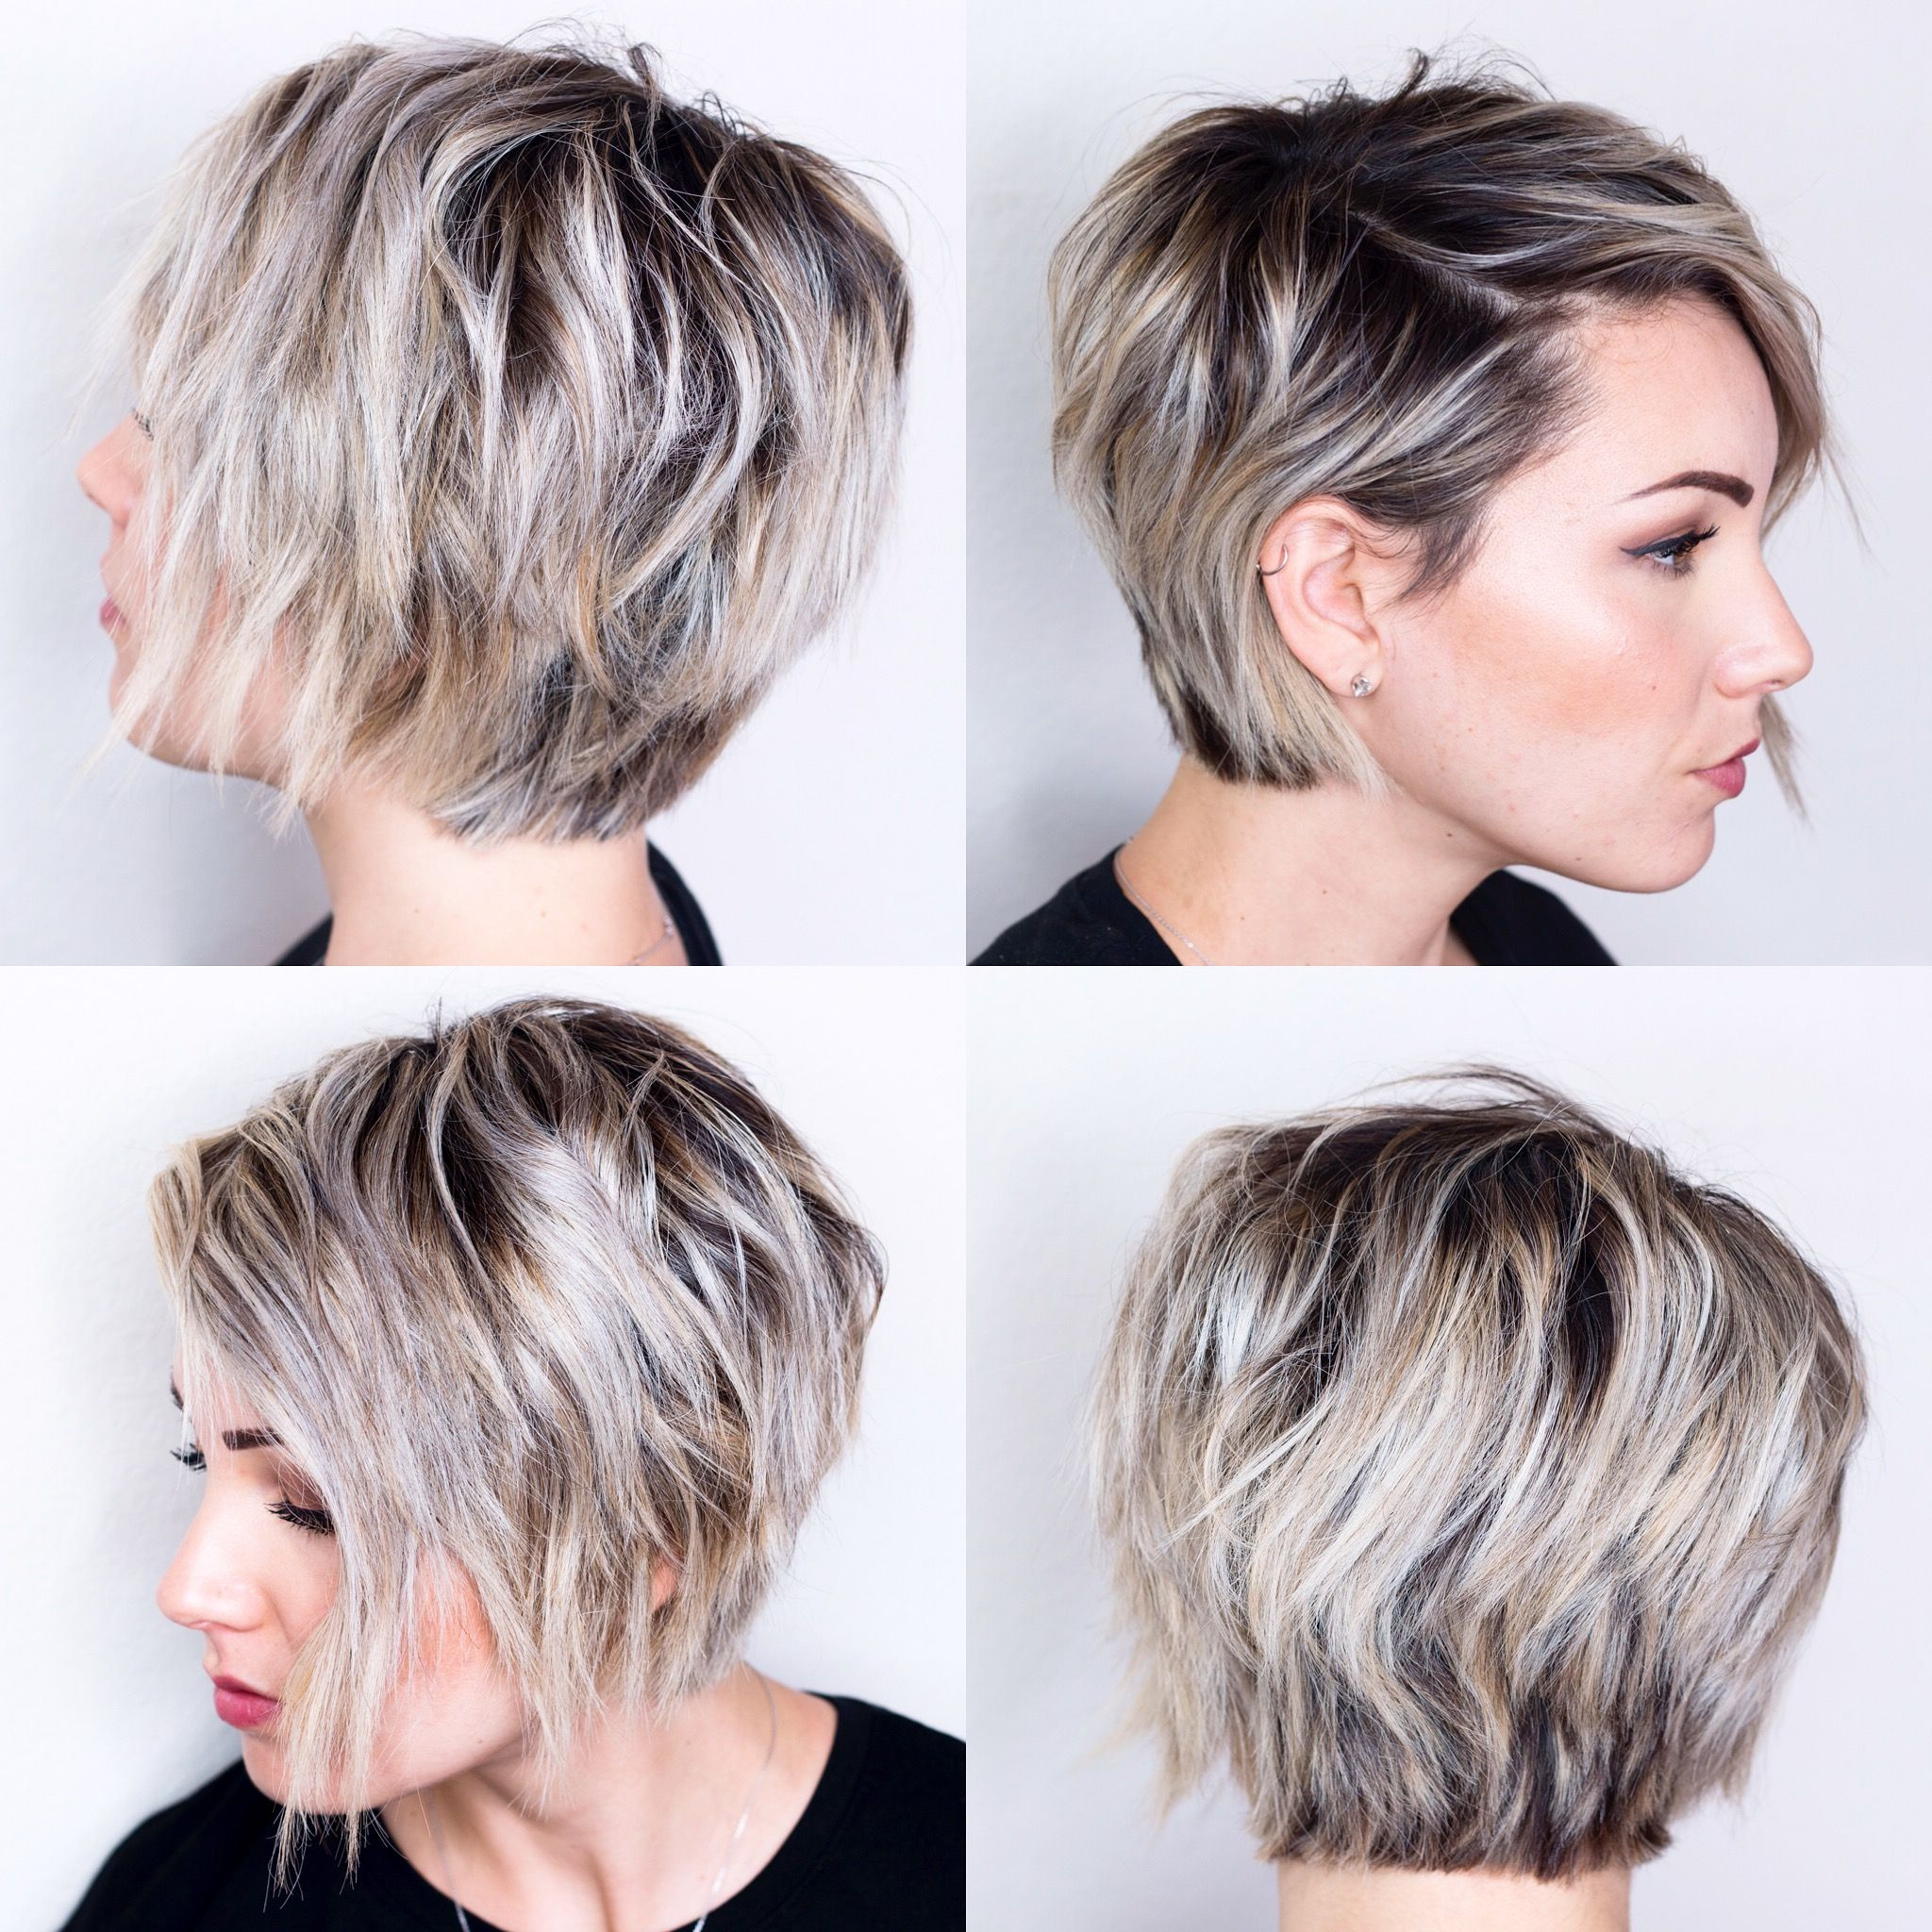 Hairstyles : Short Asymmetrical Pixie Extraordinary 60 With Regard To Asymmetrical Shaggy Pixie Hairstyles (View 5 of 20)